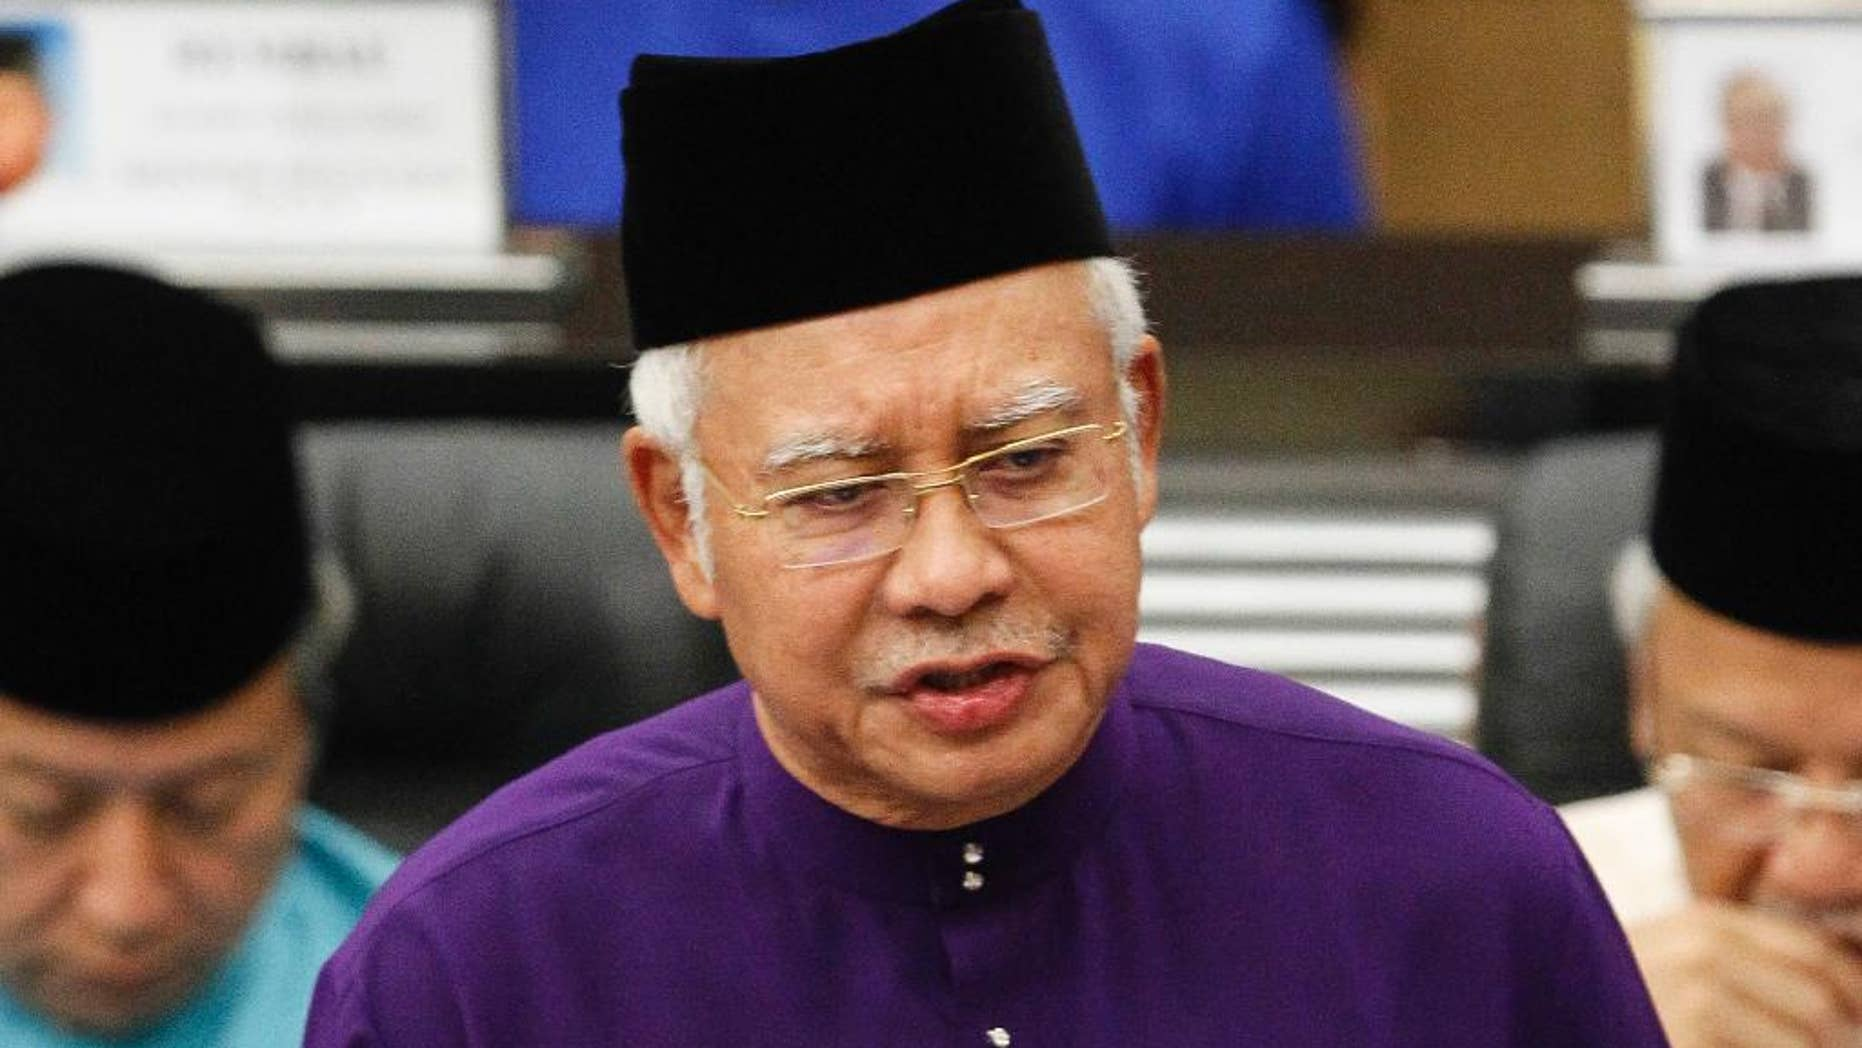 FILE - In this Oct. 23, 2015 file photo, Malaysian Prime Minister and Finance Minister Najib Razak speaks as he unveils the Malaysia's 2016 budget at Parliament House in Kuala Lumpur, Malaysia. Scandal-ridden Najib is seeking a big win for his ruling coalition in elections in the country's biggest state. More than 1.1 million people in Sarawak state on Borneo island are voting Saturday, May 7, 2016, for 82 lawmakers in the state assembly. (AP Photo/Joshua Paul, File)